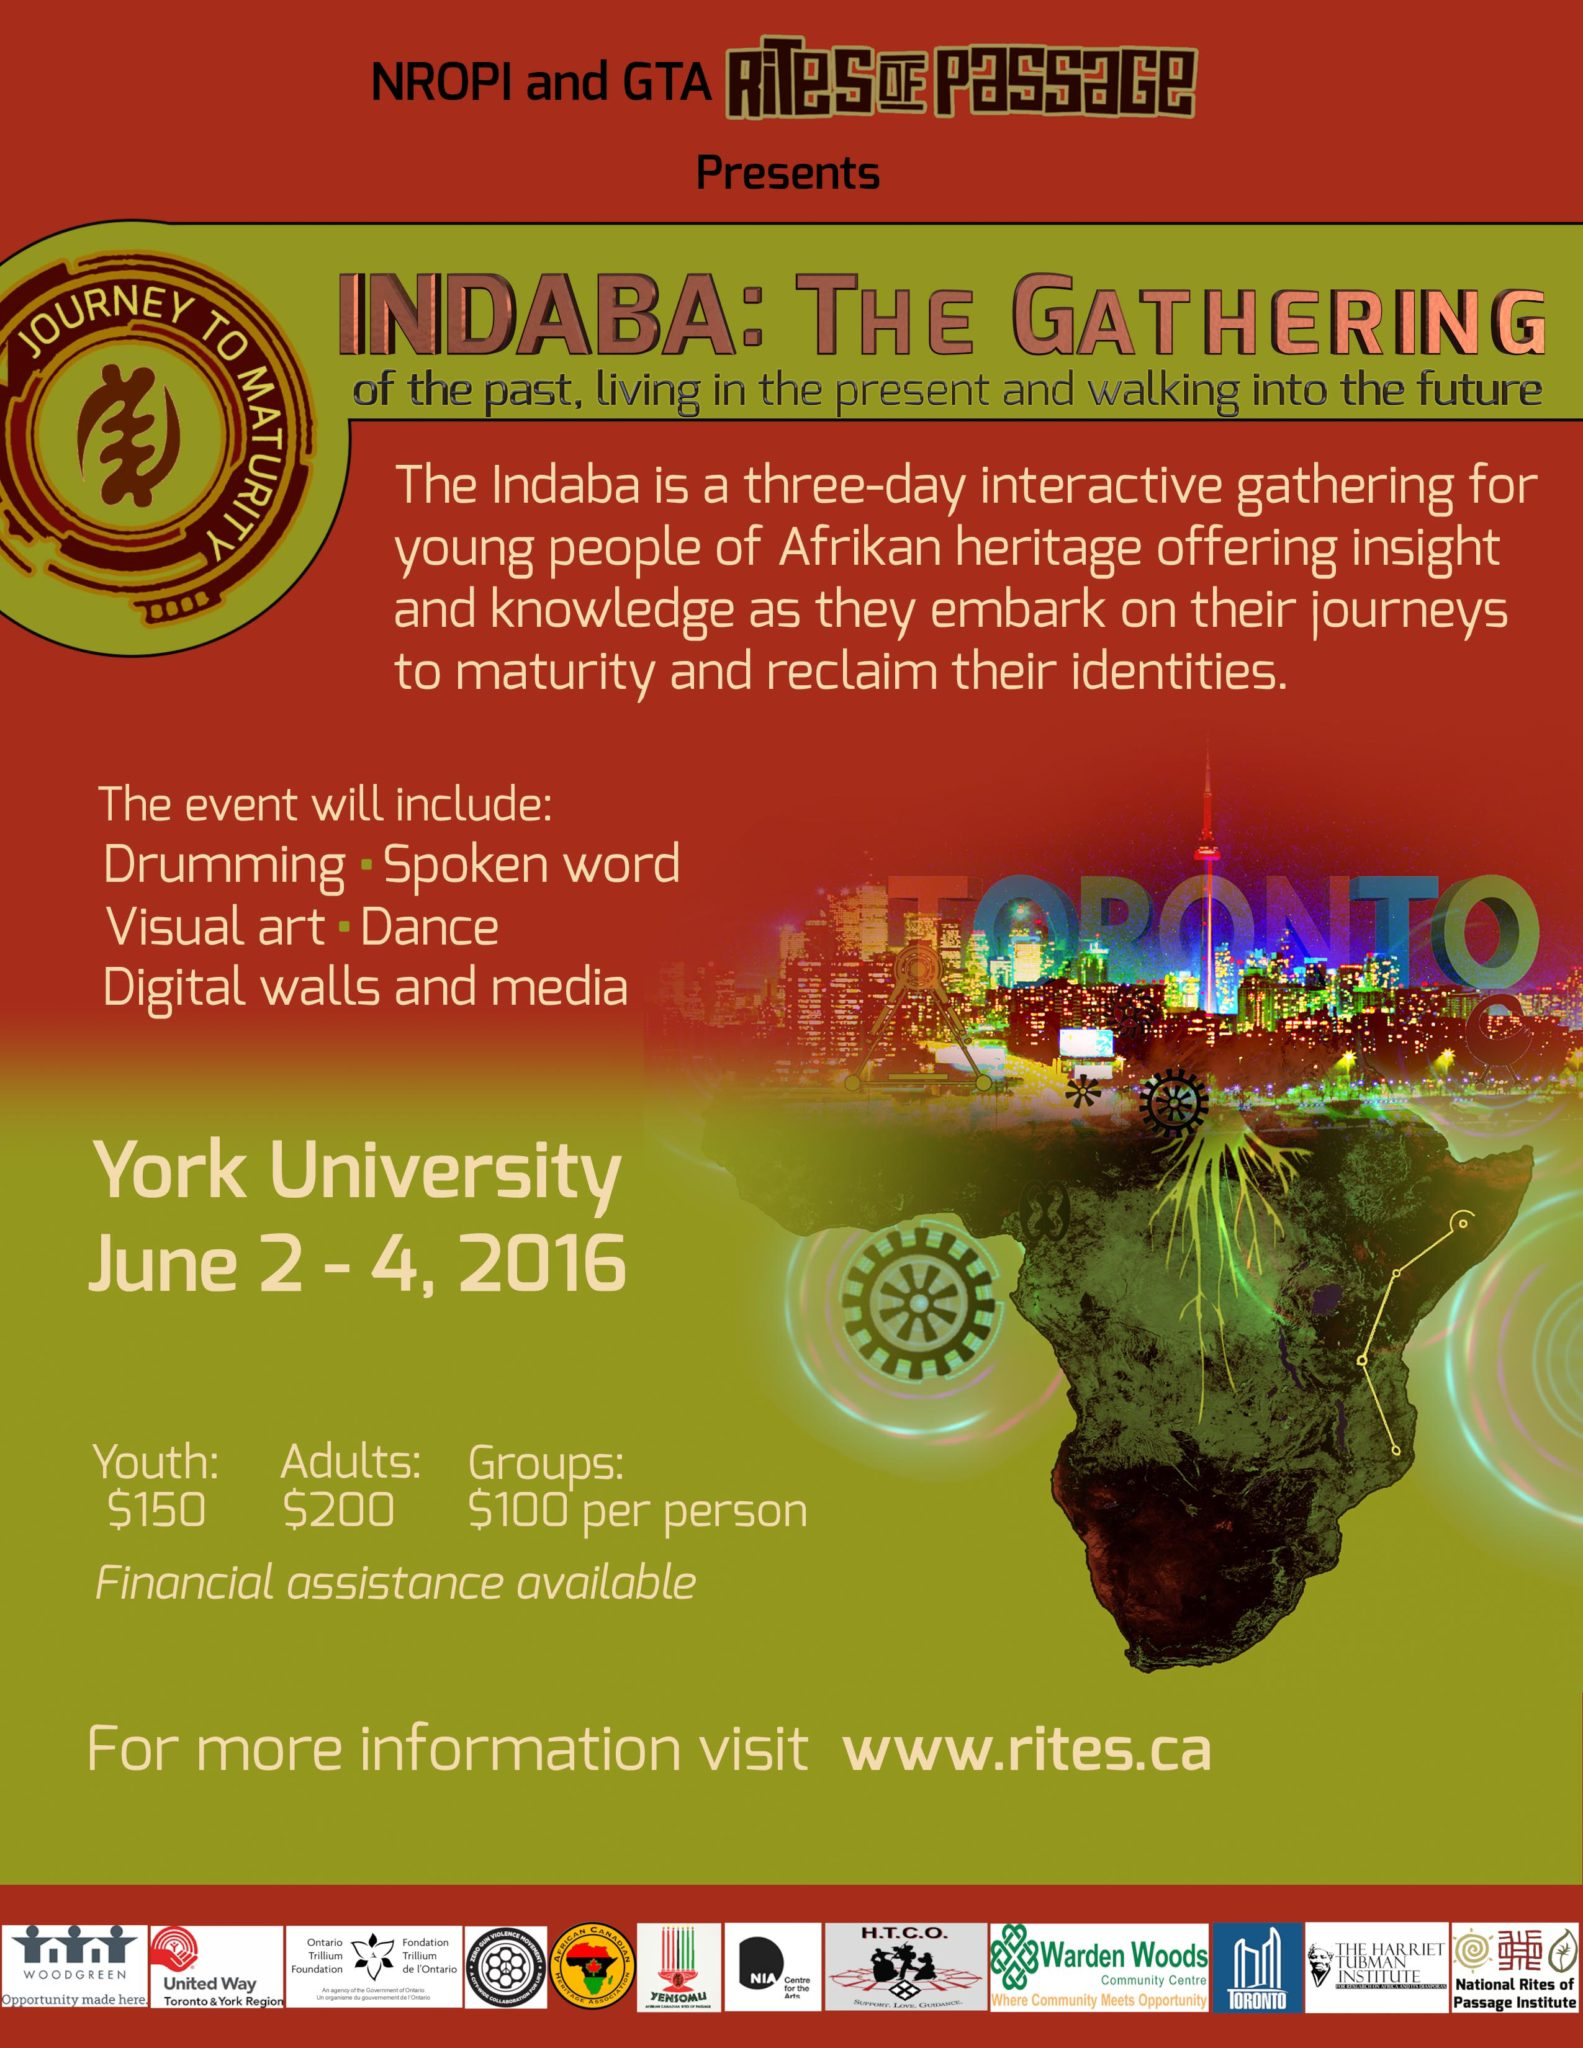 The Dr. Vibe Show™ Will Be Sharing At The Indaba Youth Conference – June 2 – 4, 2016 At York University In Toronto